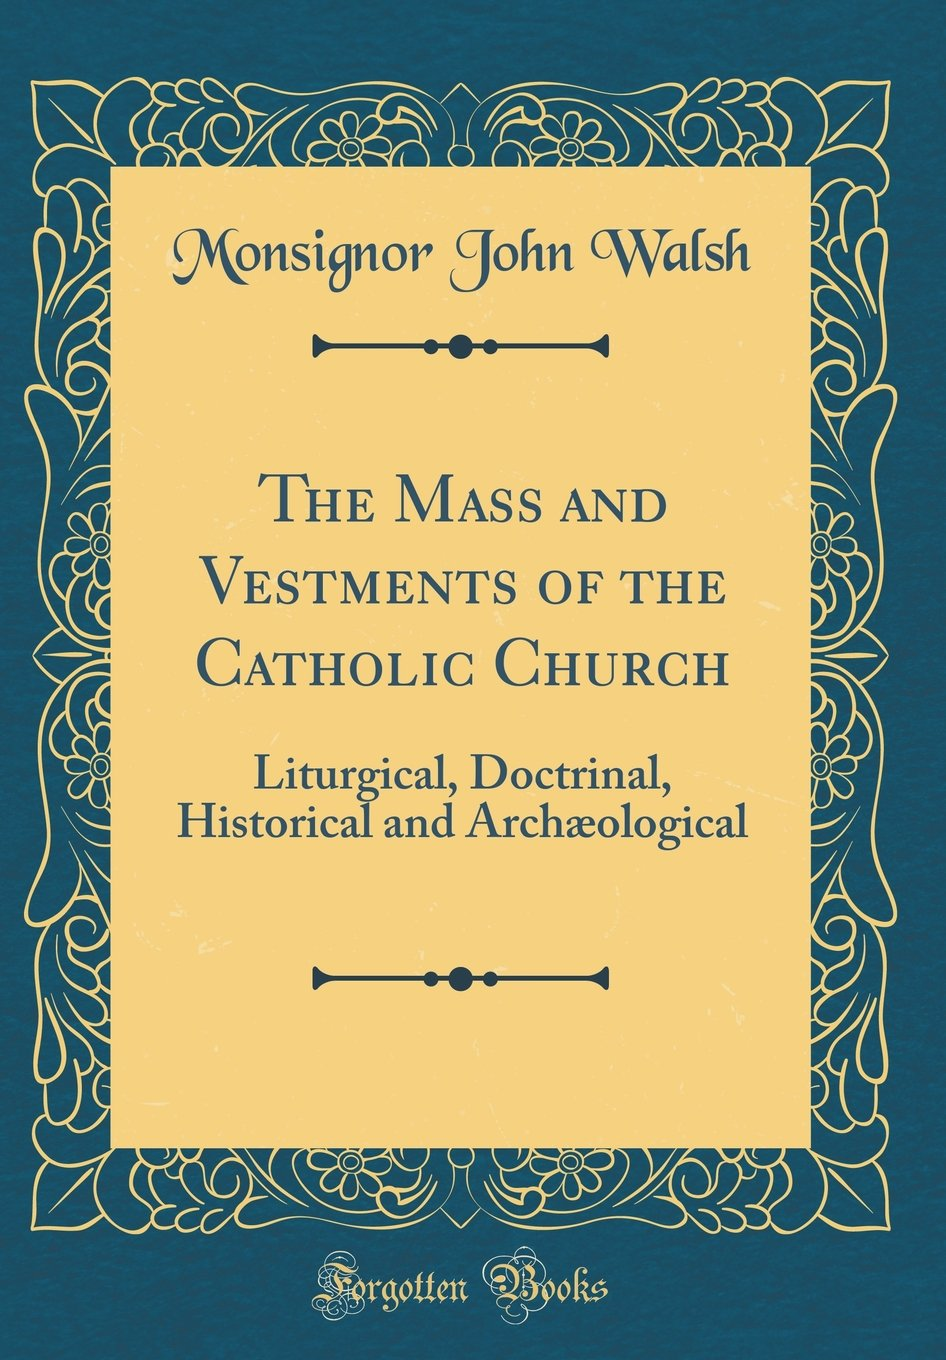 Download The Mass and Vestments of the Catholic Church: Liturgical, Doctrinal, Historical and Archæological (Classic Reprint) ebook